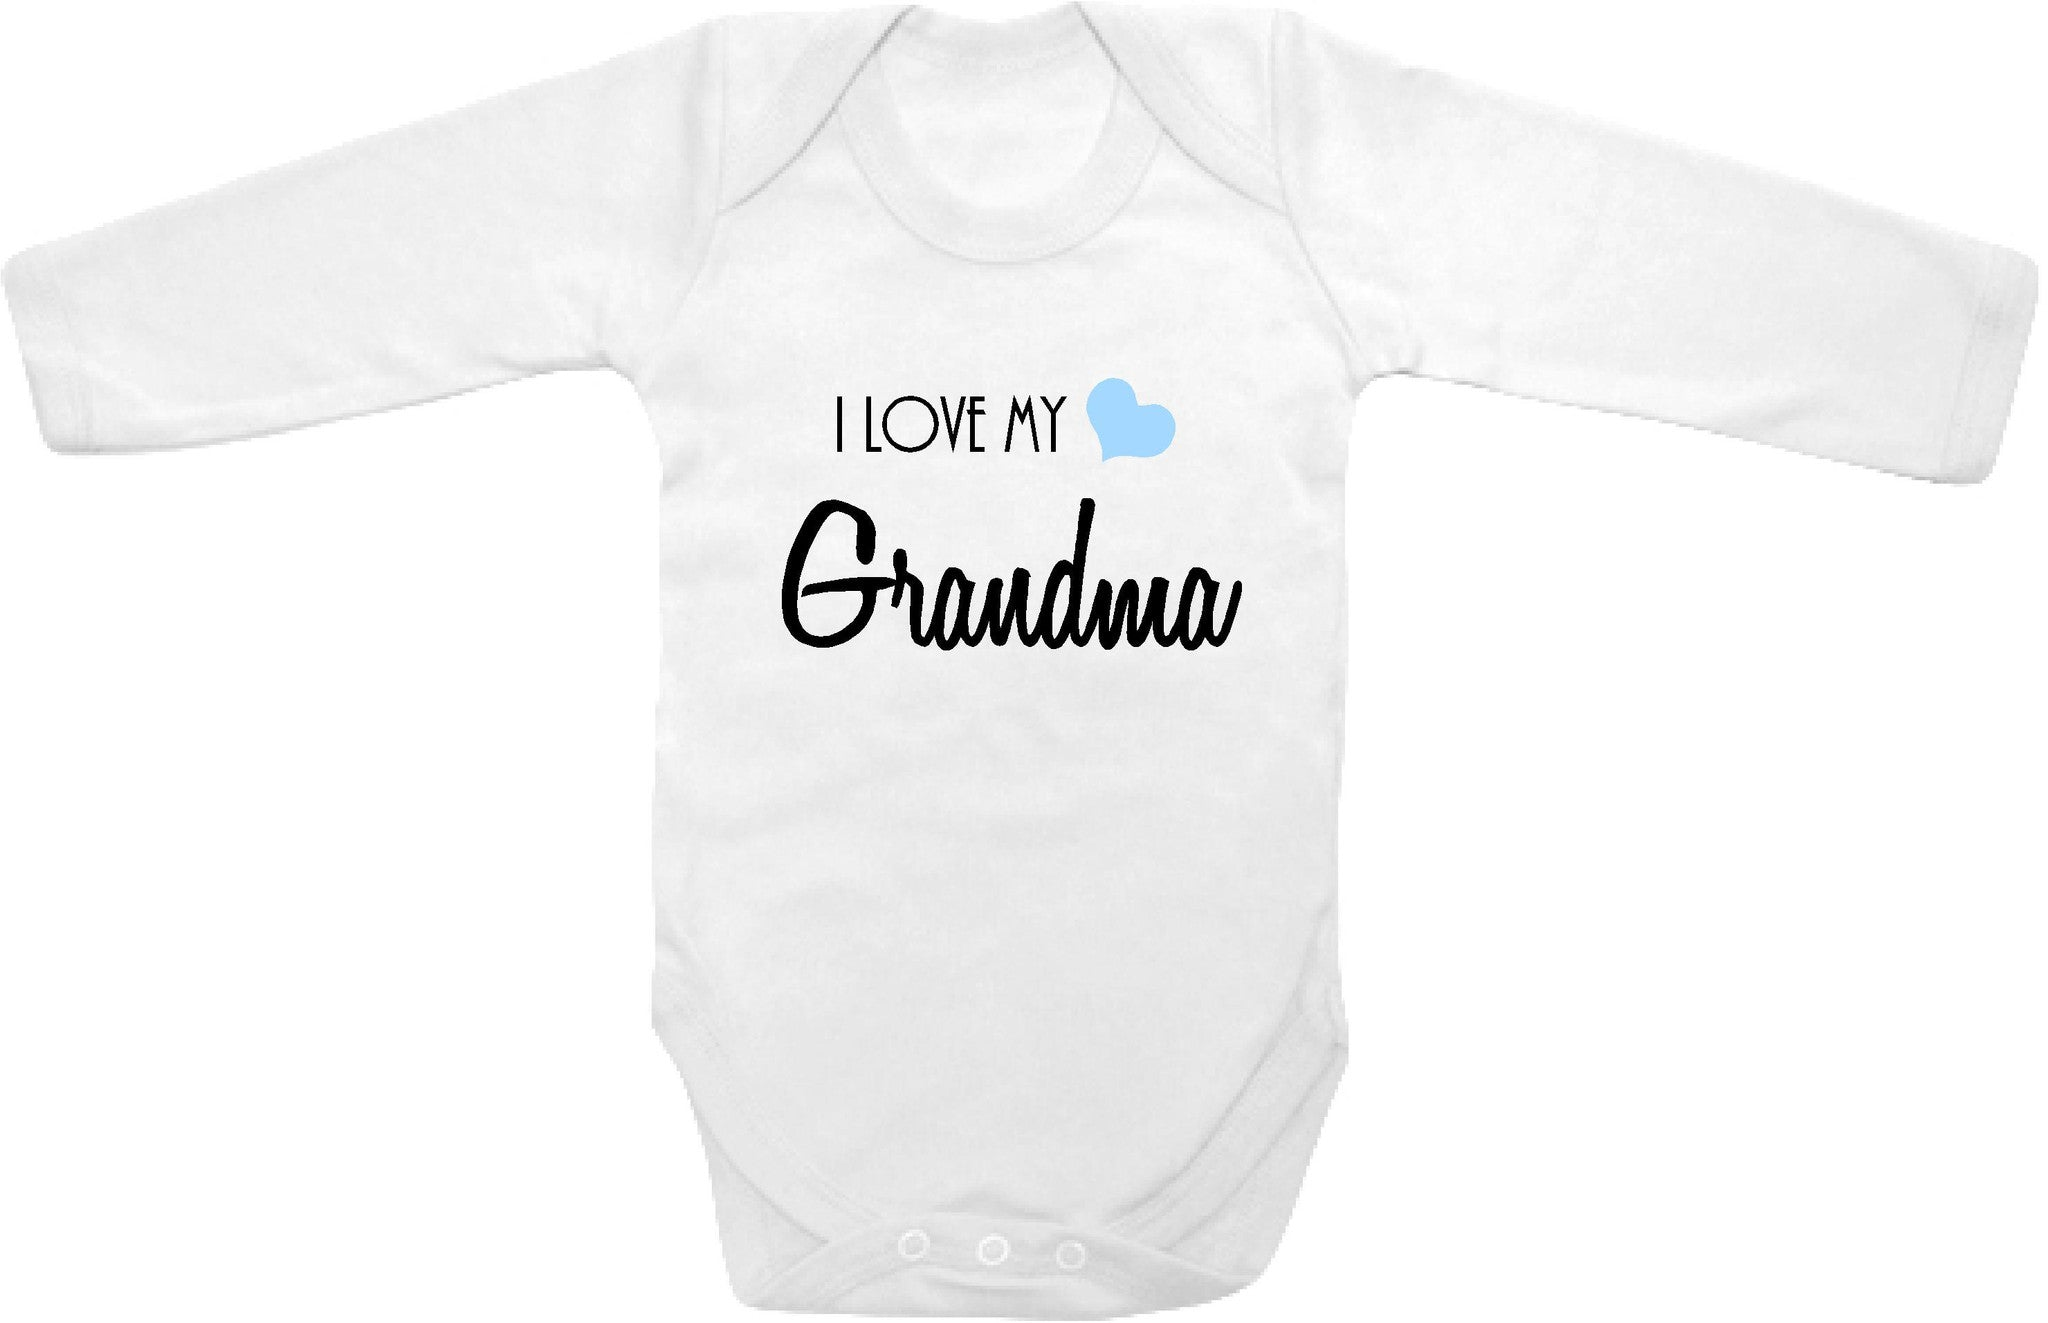 I love my Grandma cute infant clothing funny baby clothes one piece